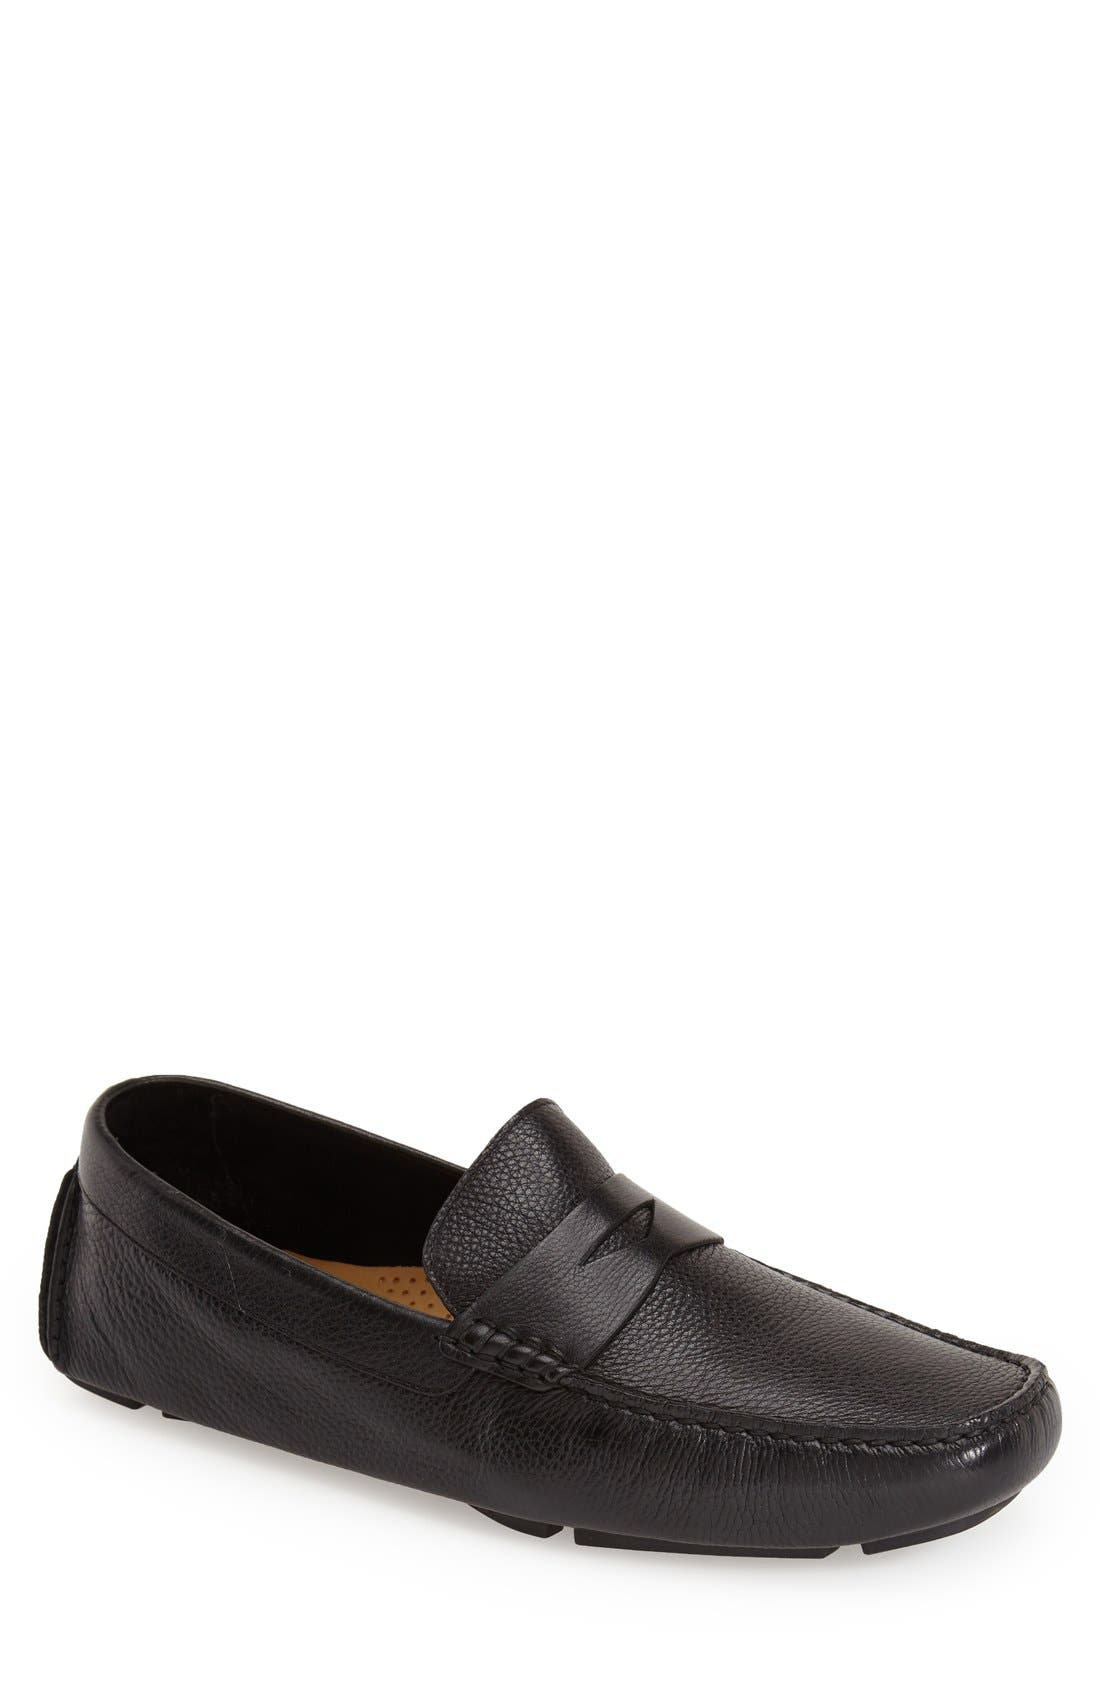 'Howland' Penny Loafer,                         Main,                         color, BLACK TUMBLED